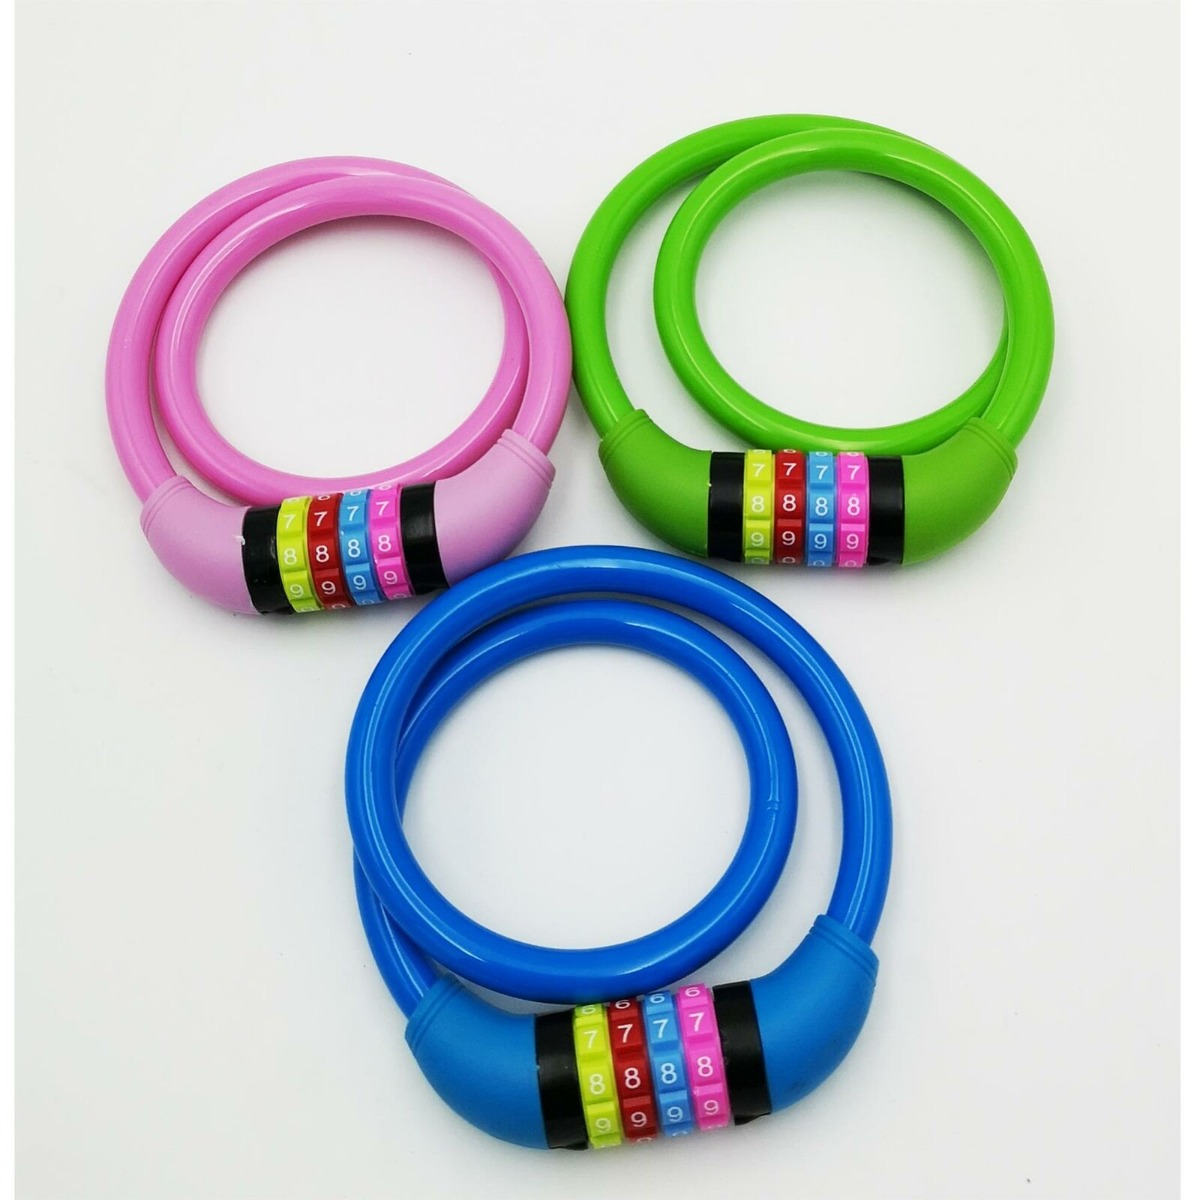 Blackspur 12mm x 650mm Colourful Combination Lock